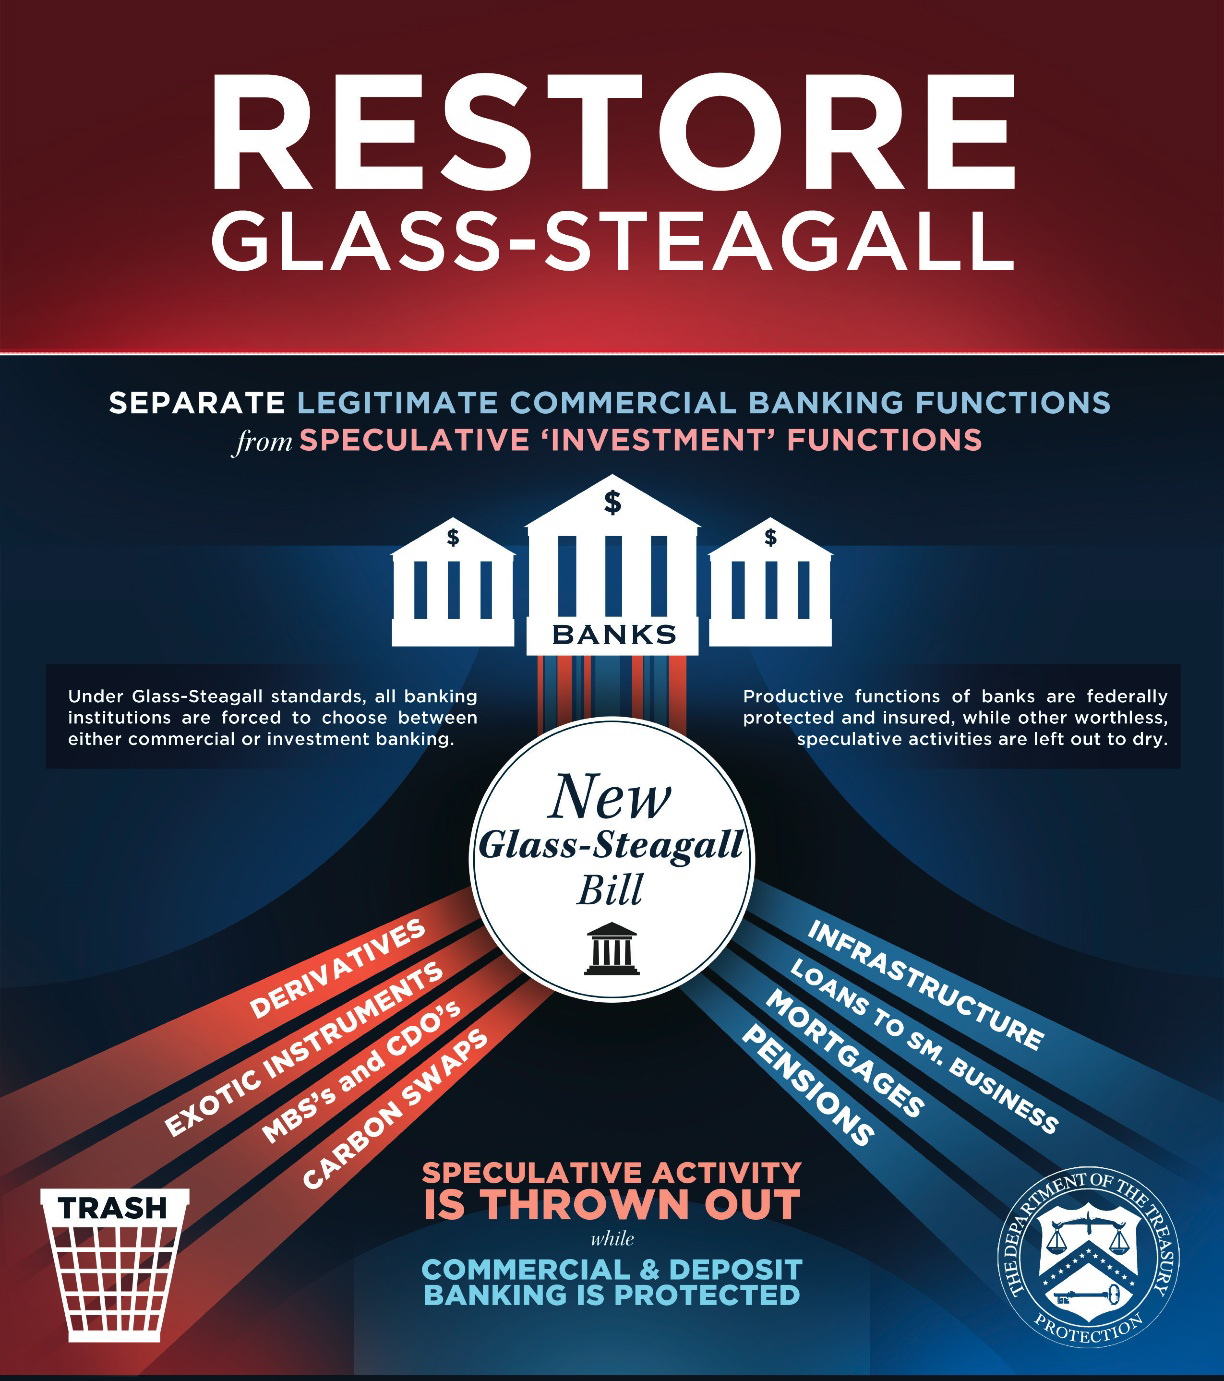 glass steagall act Both hillary clinton and bernie sanders are talking tough about wall street reform but only bernie sanders is advocating a reprise of the 1933 glass-steagall act, specifically that section of the depression-era act that had prohibited commercial banks and investment banks from operating under the same roof.